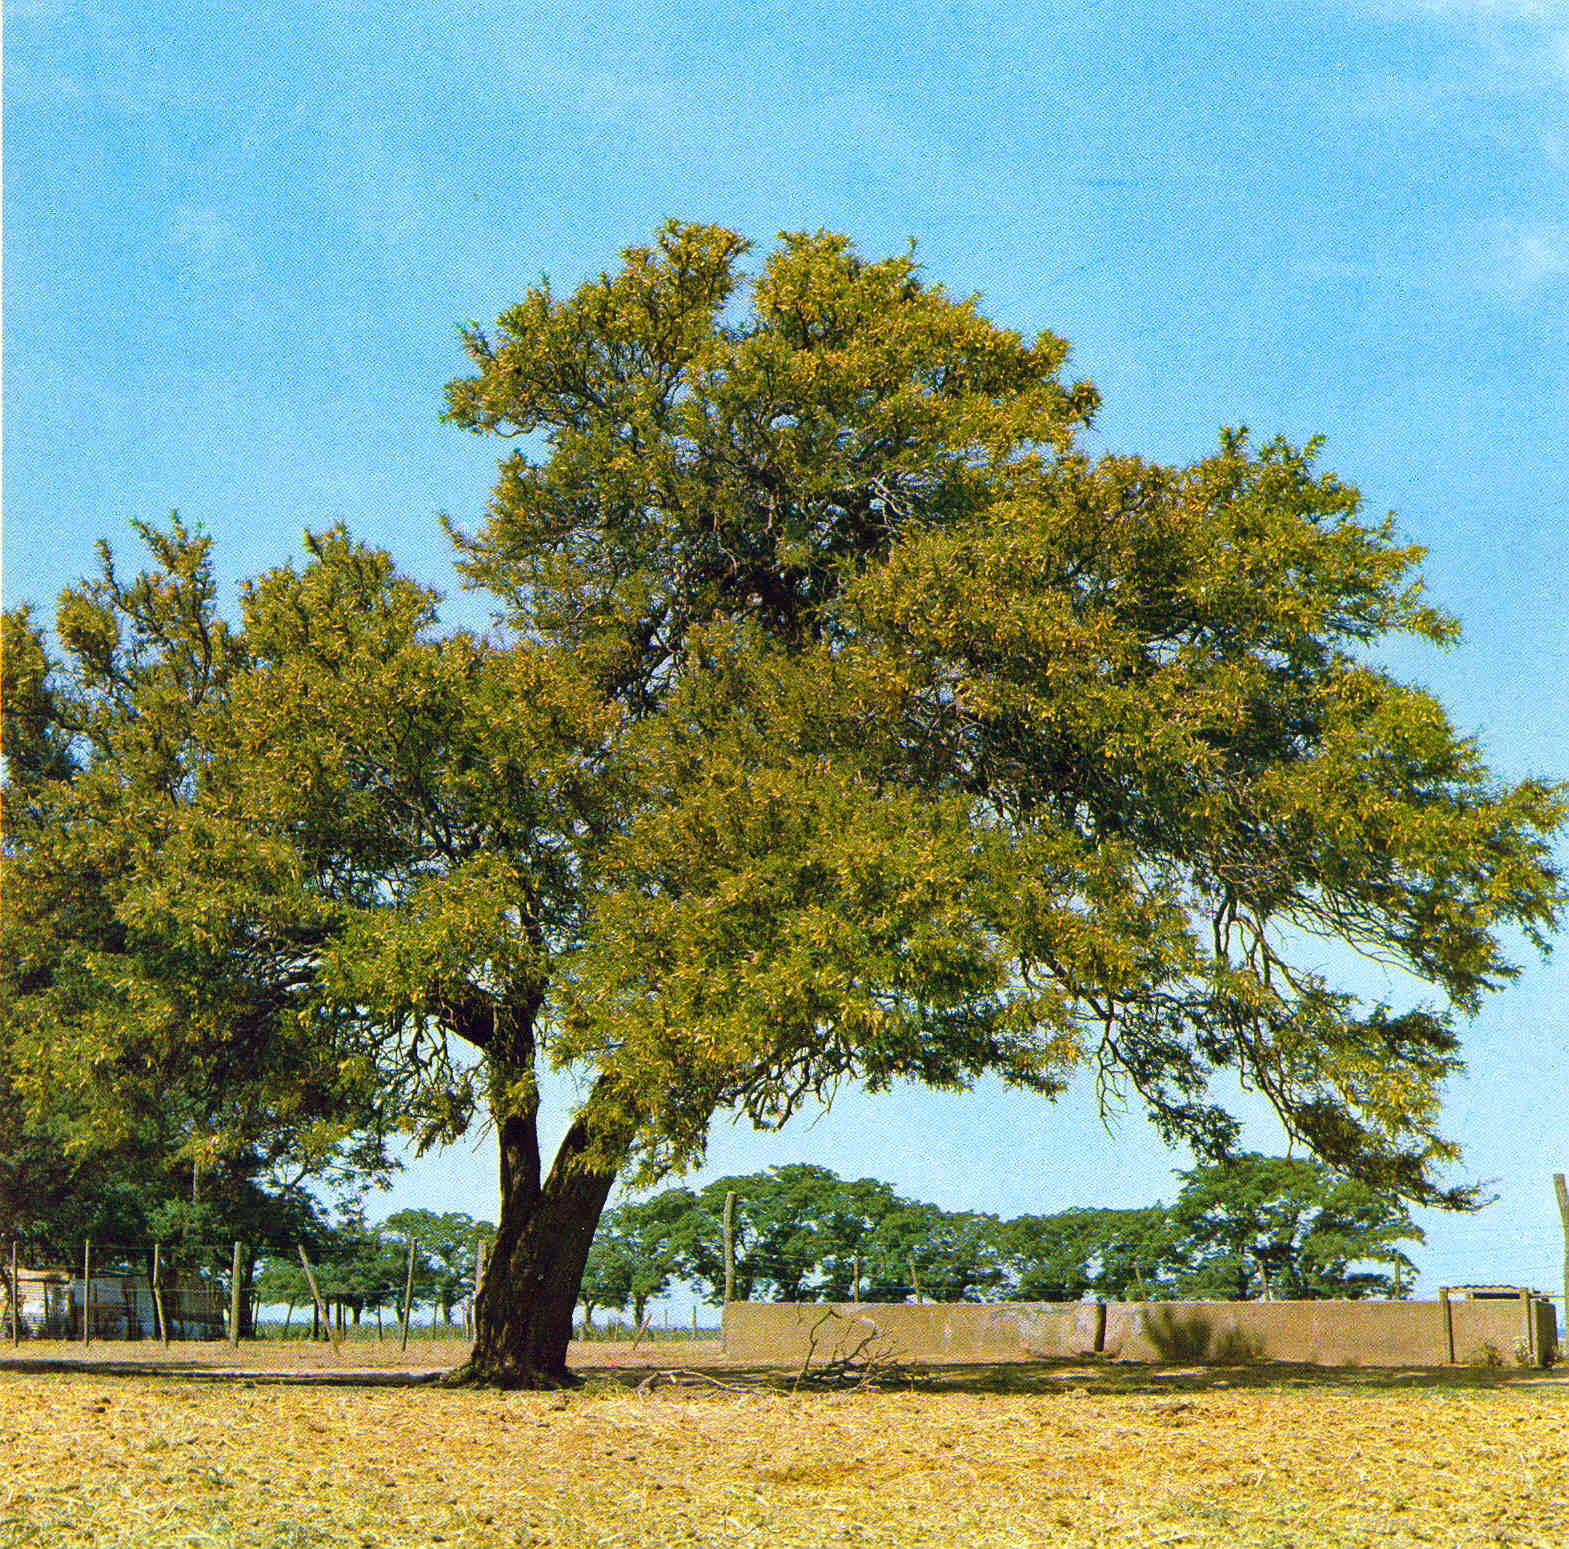 File:Prosopis algarrobilla.jpg - Wikipedia, the free encyclopedia